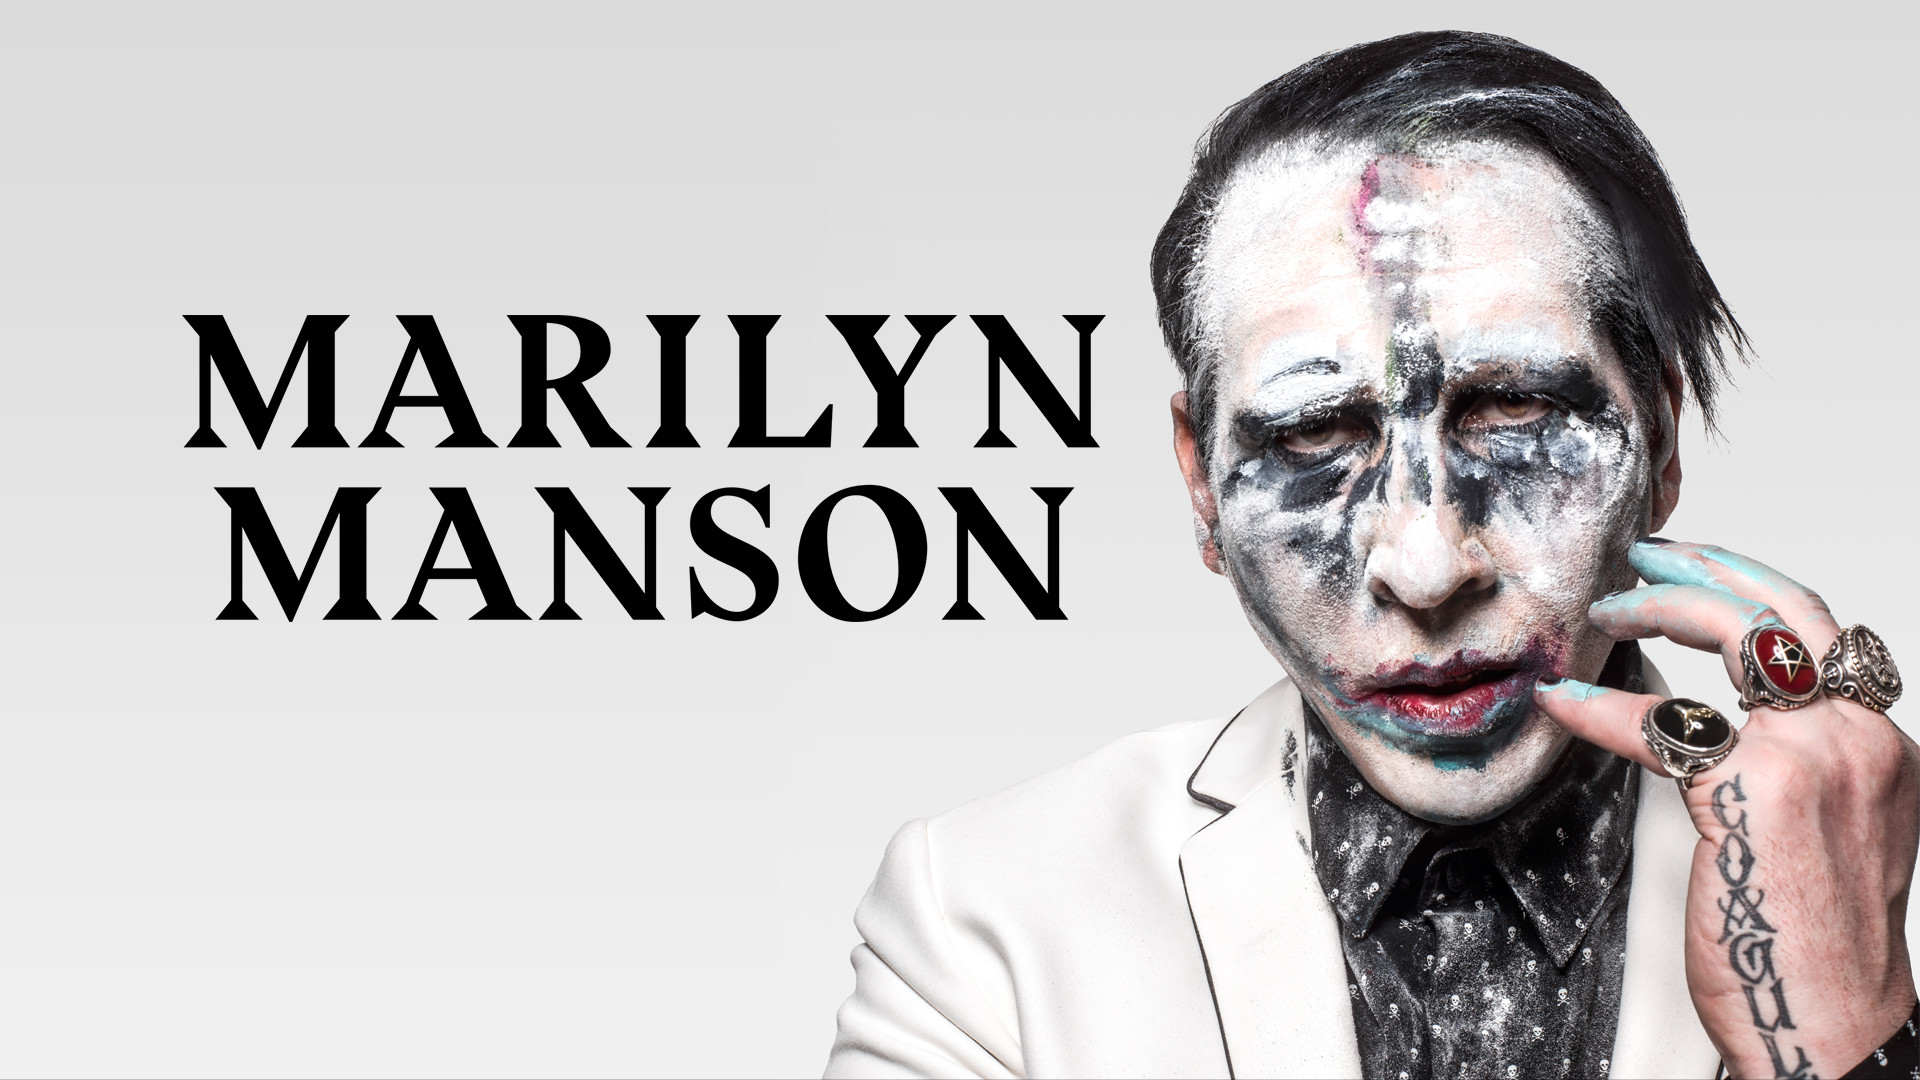 Marilyn Manson Drops New Song, Info About Up-Coming Album [AUDIO]